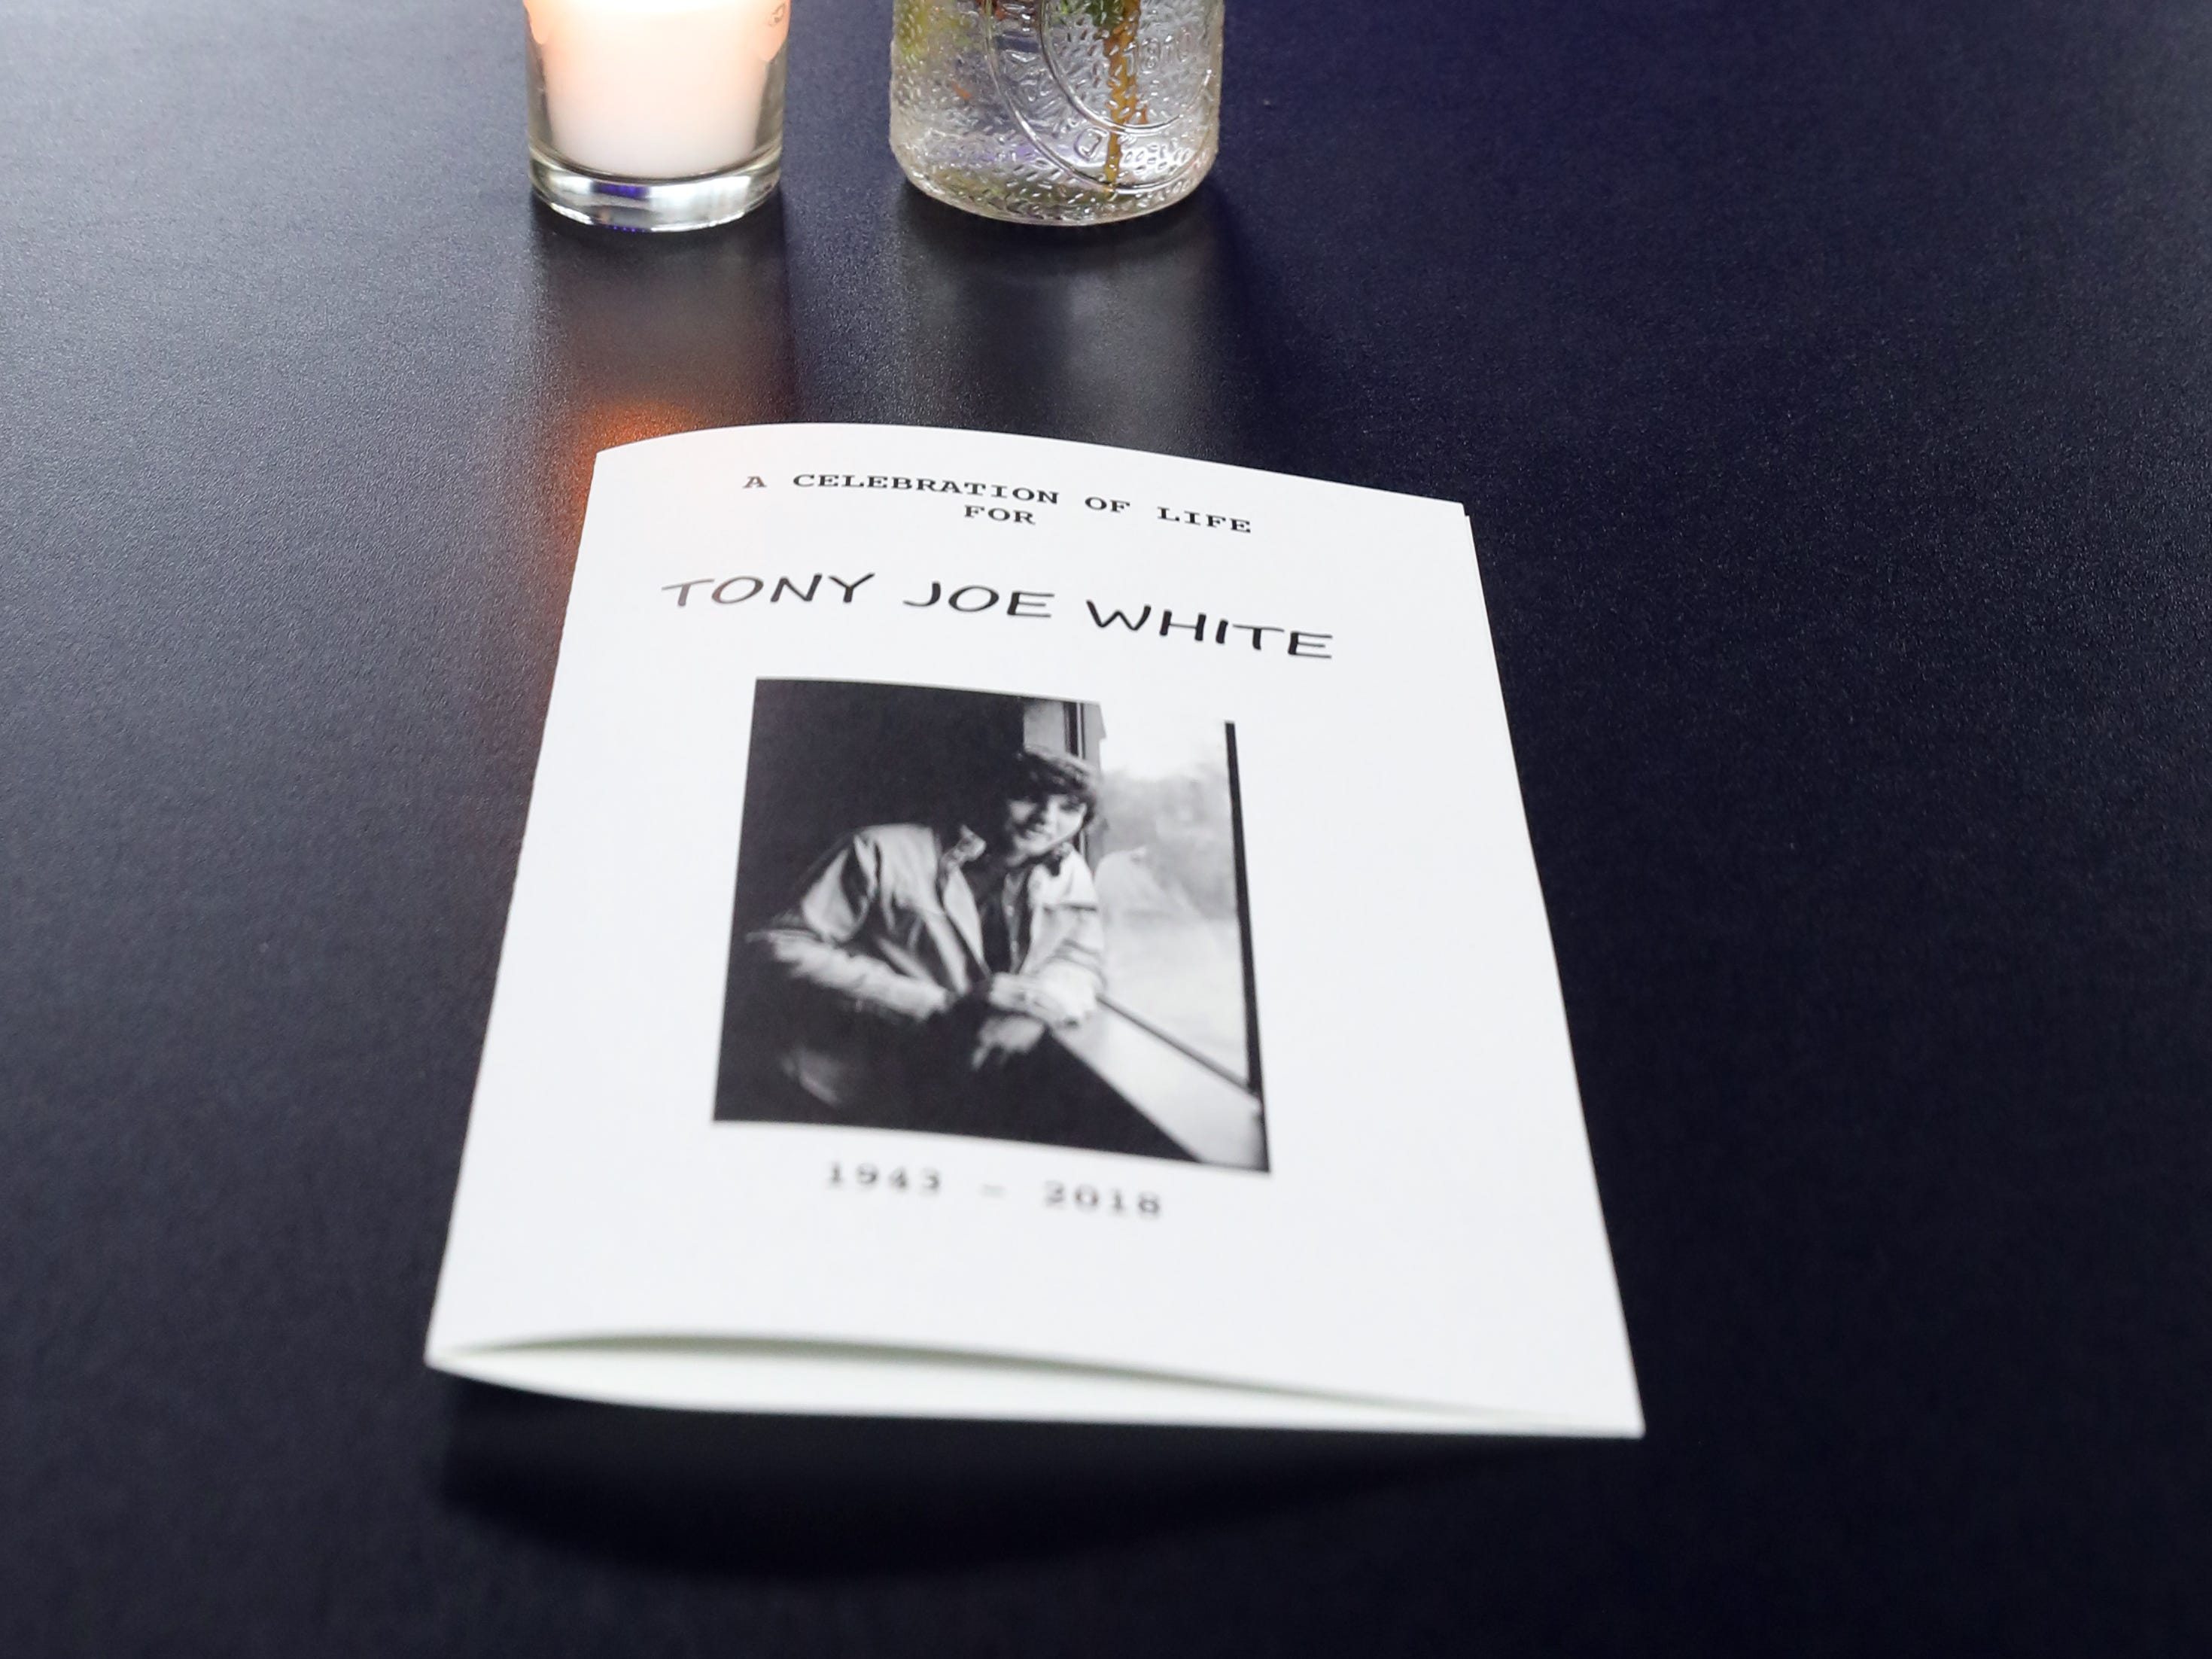 Flowers, programs and candles are set on each table during a Celebration of Life service held for singer-songwriter Tony Joe White at Marathon Music Works Wednesday, October 31, 2018.